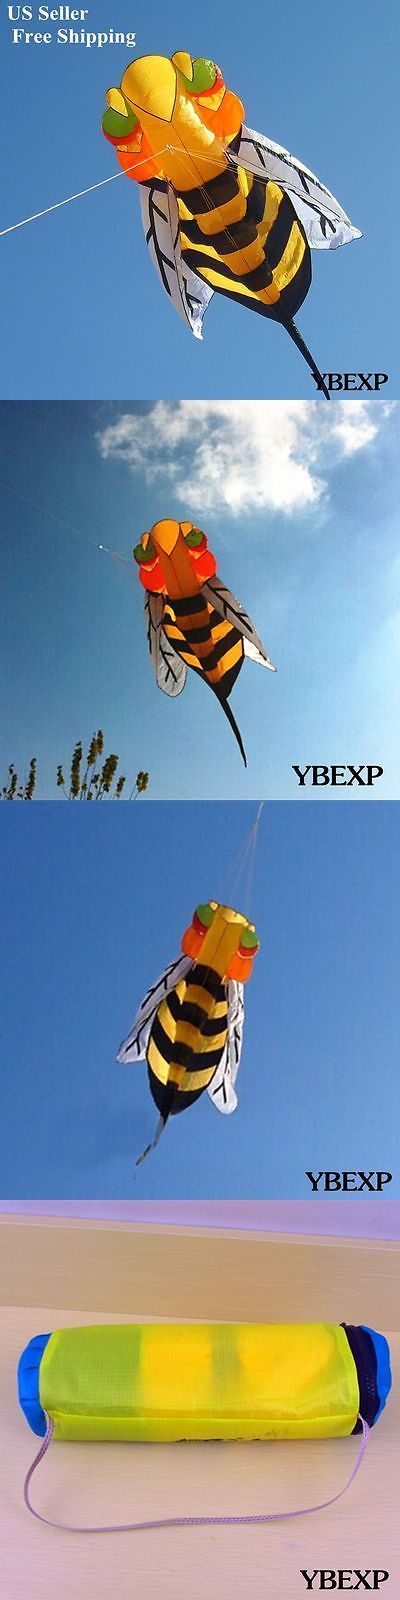 Kites 2569: 2.8M Small Lovely Yellow Bee Soft Single Line Kite Outdoor Toys Eye Catching Us -> BUY IT NOW ONLY: $32.99 on eBay!